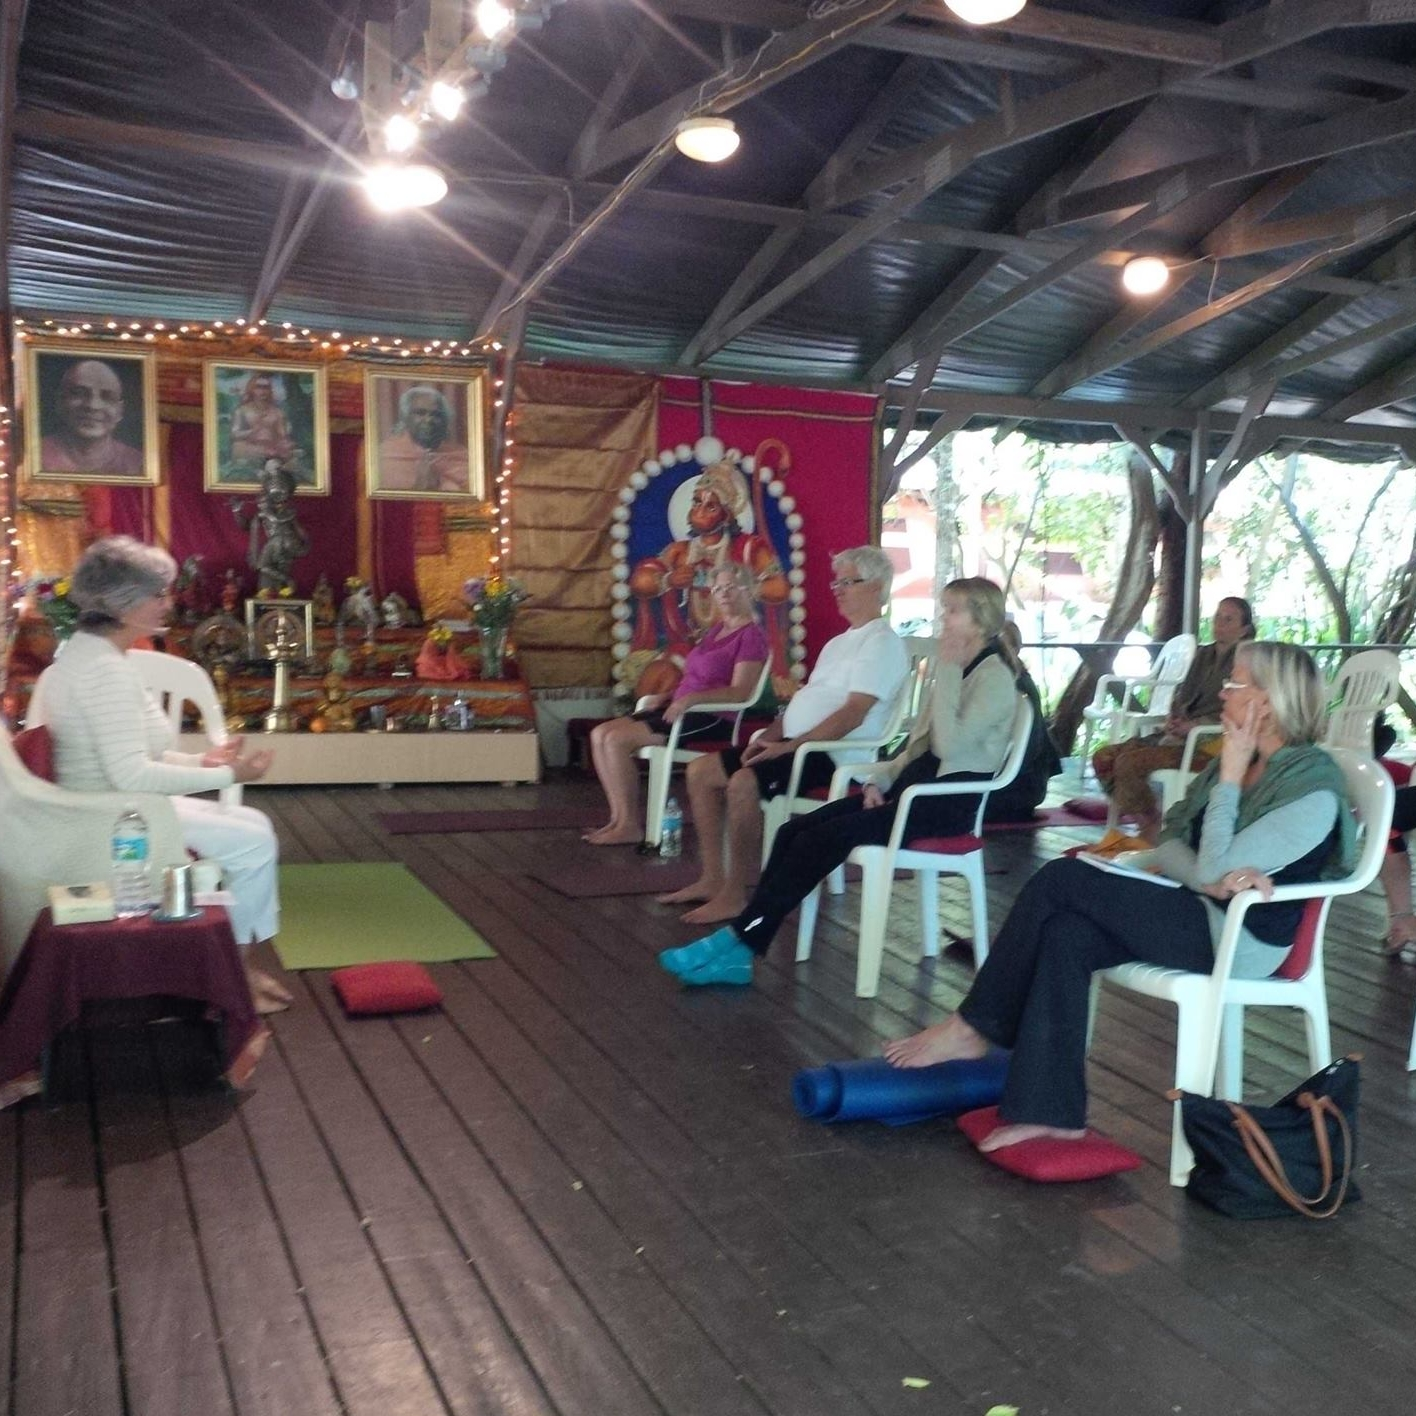 Professional Trainings   Beata offers professional trainings and courses for Osteoporosis Prevention and Treatment at the Sivananda Ashram Yoga Retreat in the Bahamas and at other locations around the world.